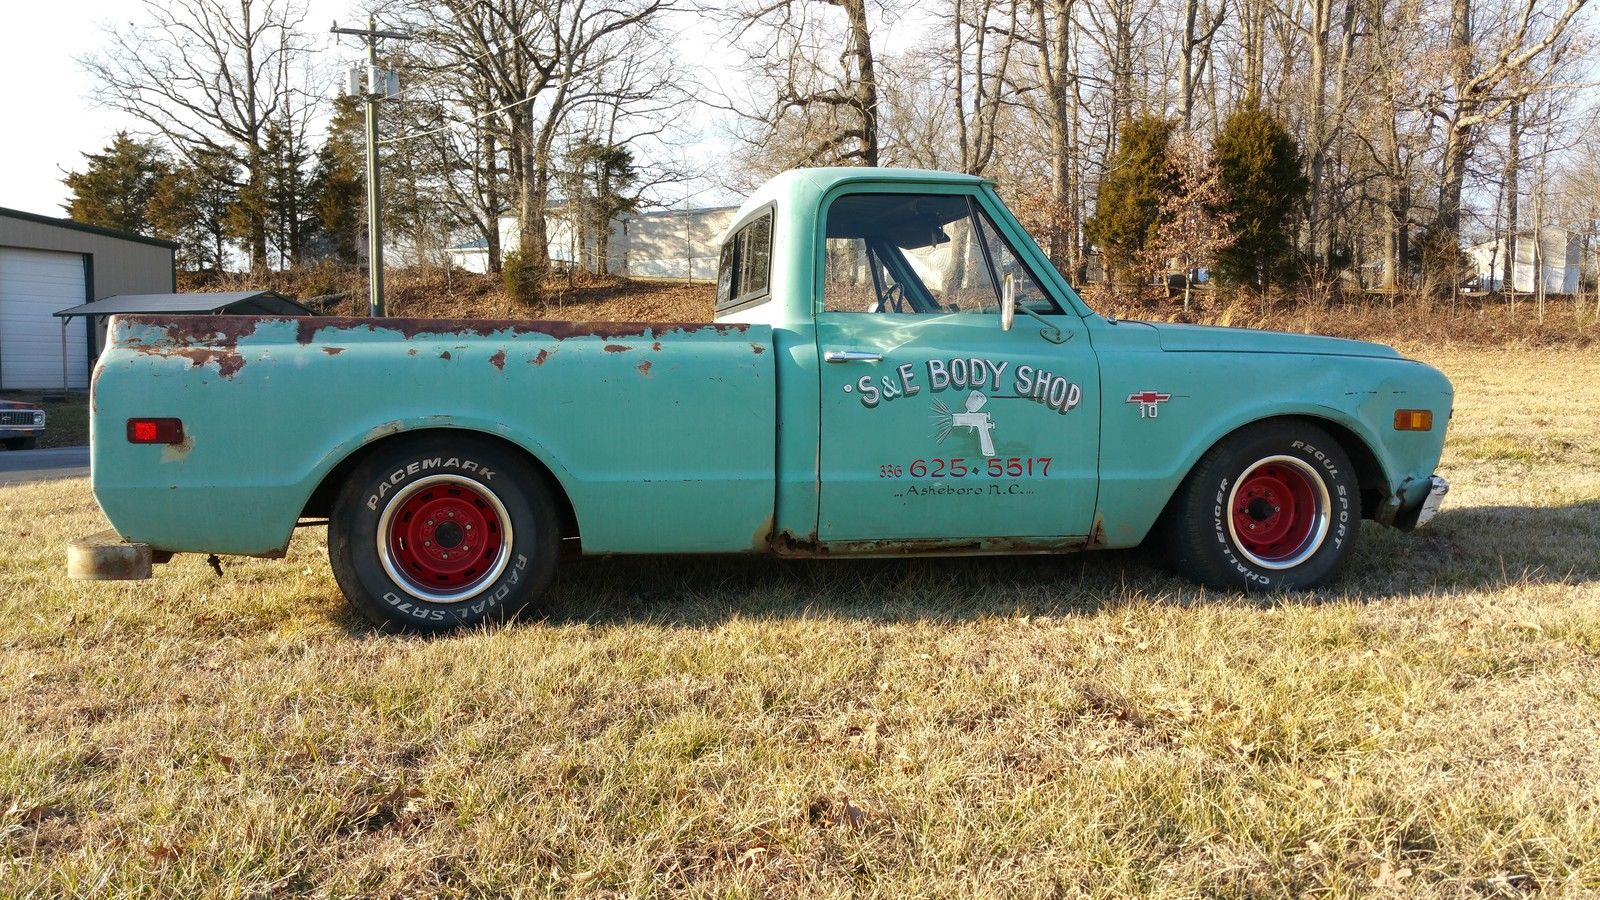 1968 Chevy C10 Shorted Shop Truck Classic Chevrolet C 10 For Sale Pickup